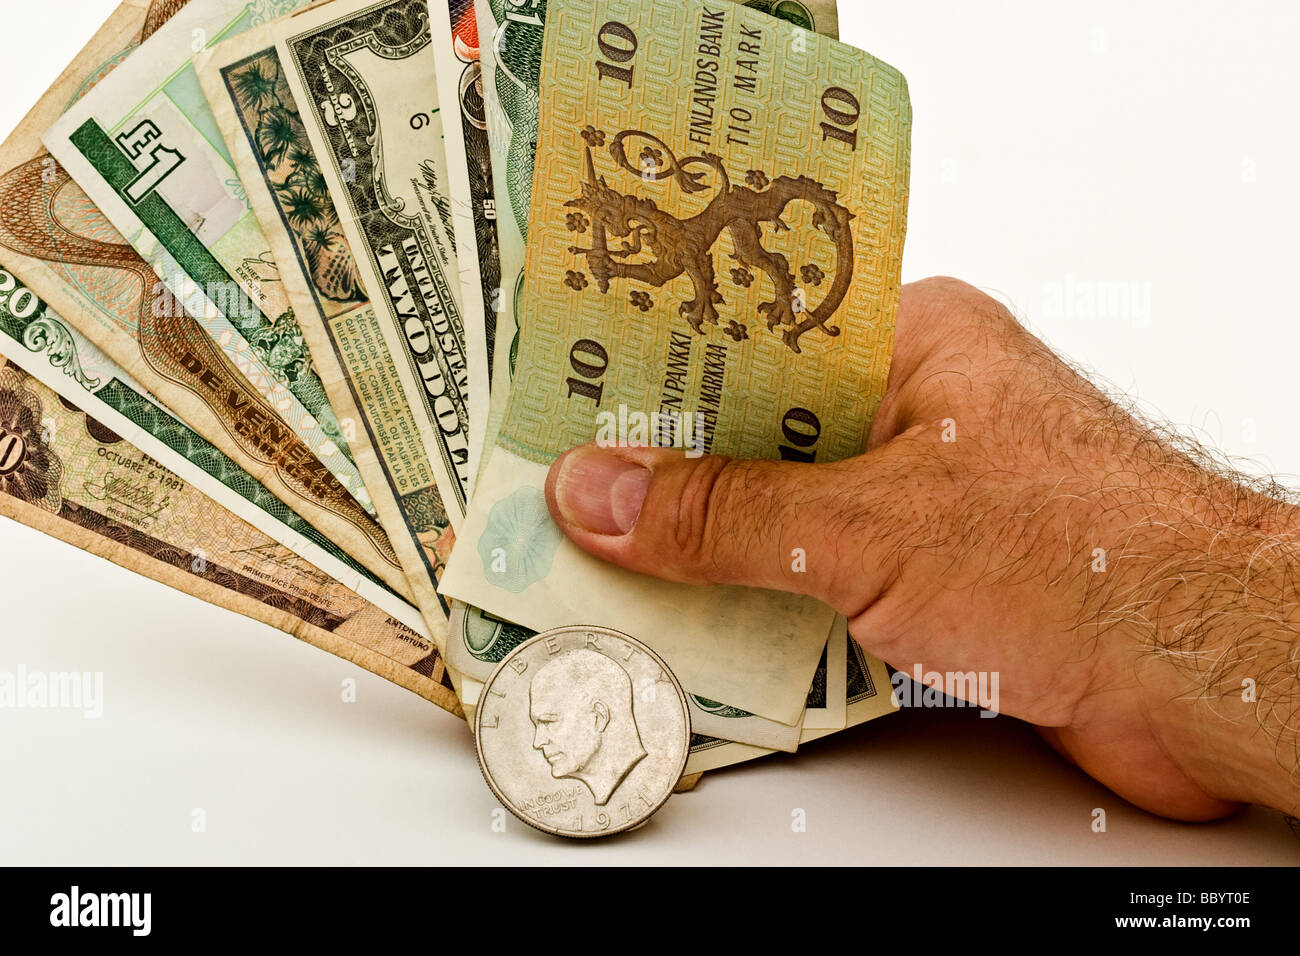 Hand holding currencies from a variety of countries behind an American silver dollar - Stock Image